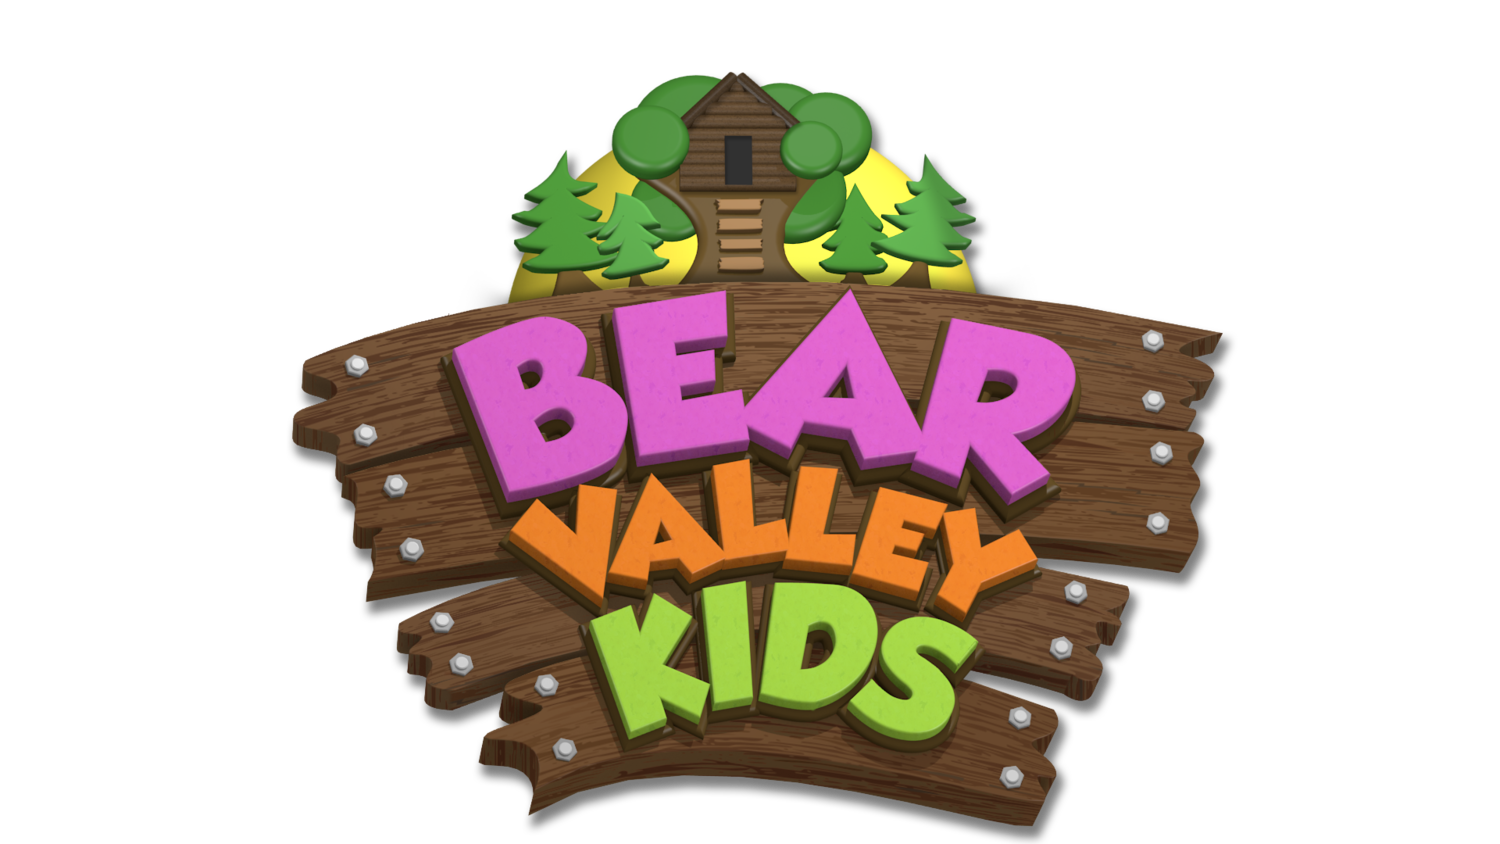 Bear Valley Kids